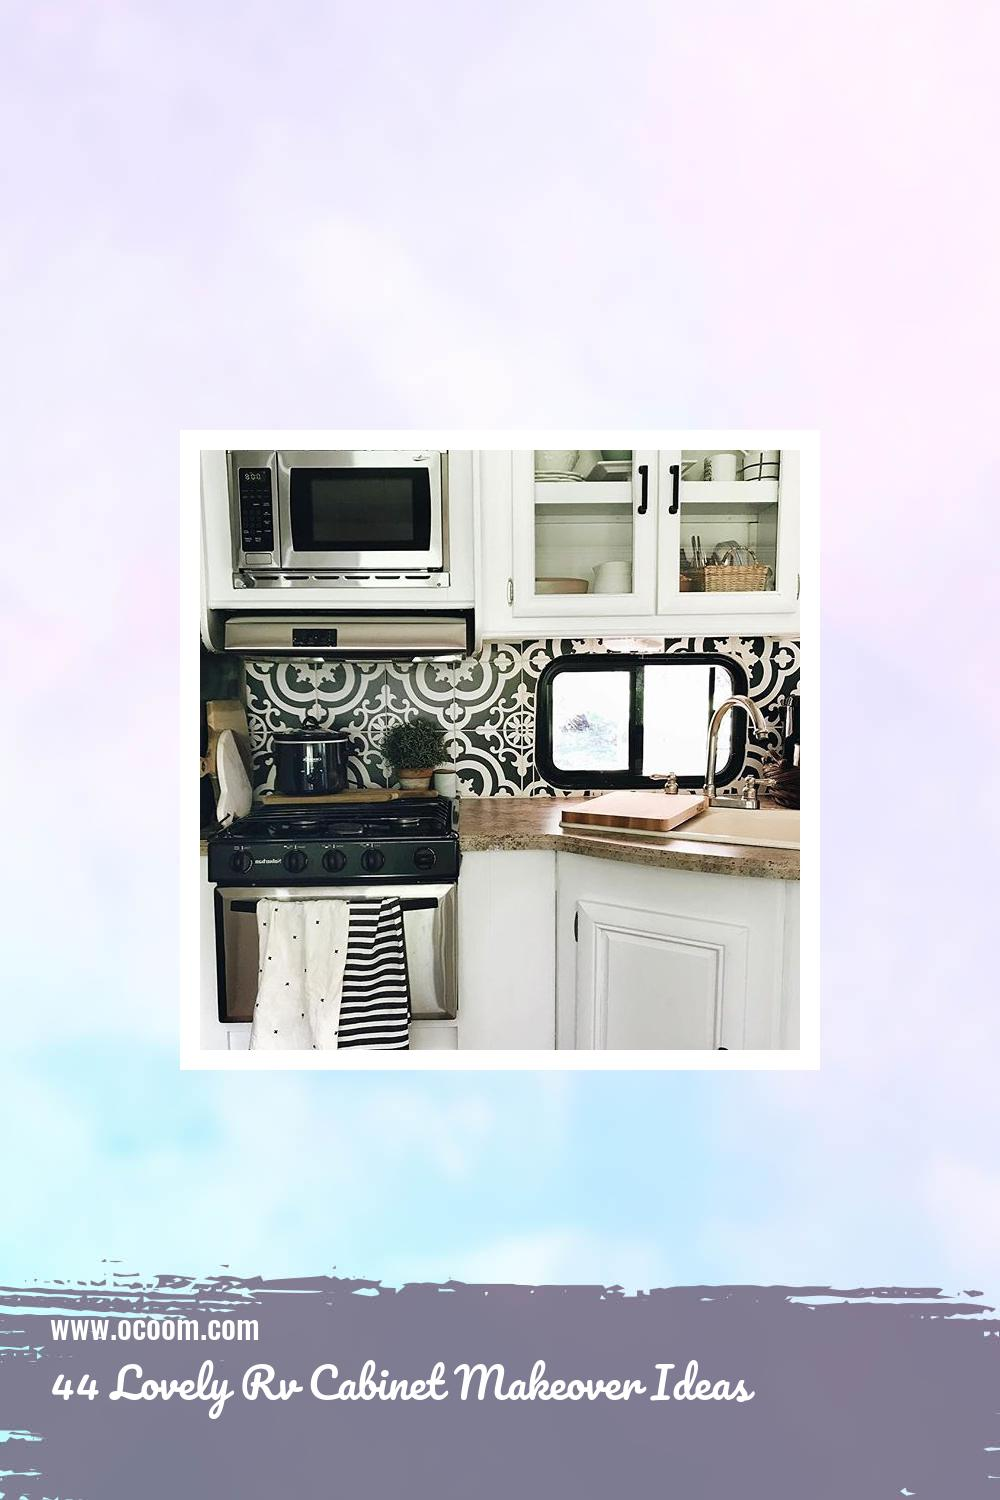 44 Lovely Rv Cabinet Makeover Ideas 11